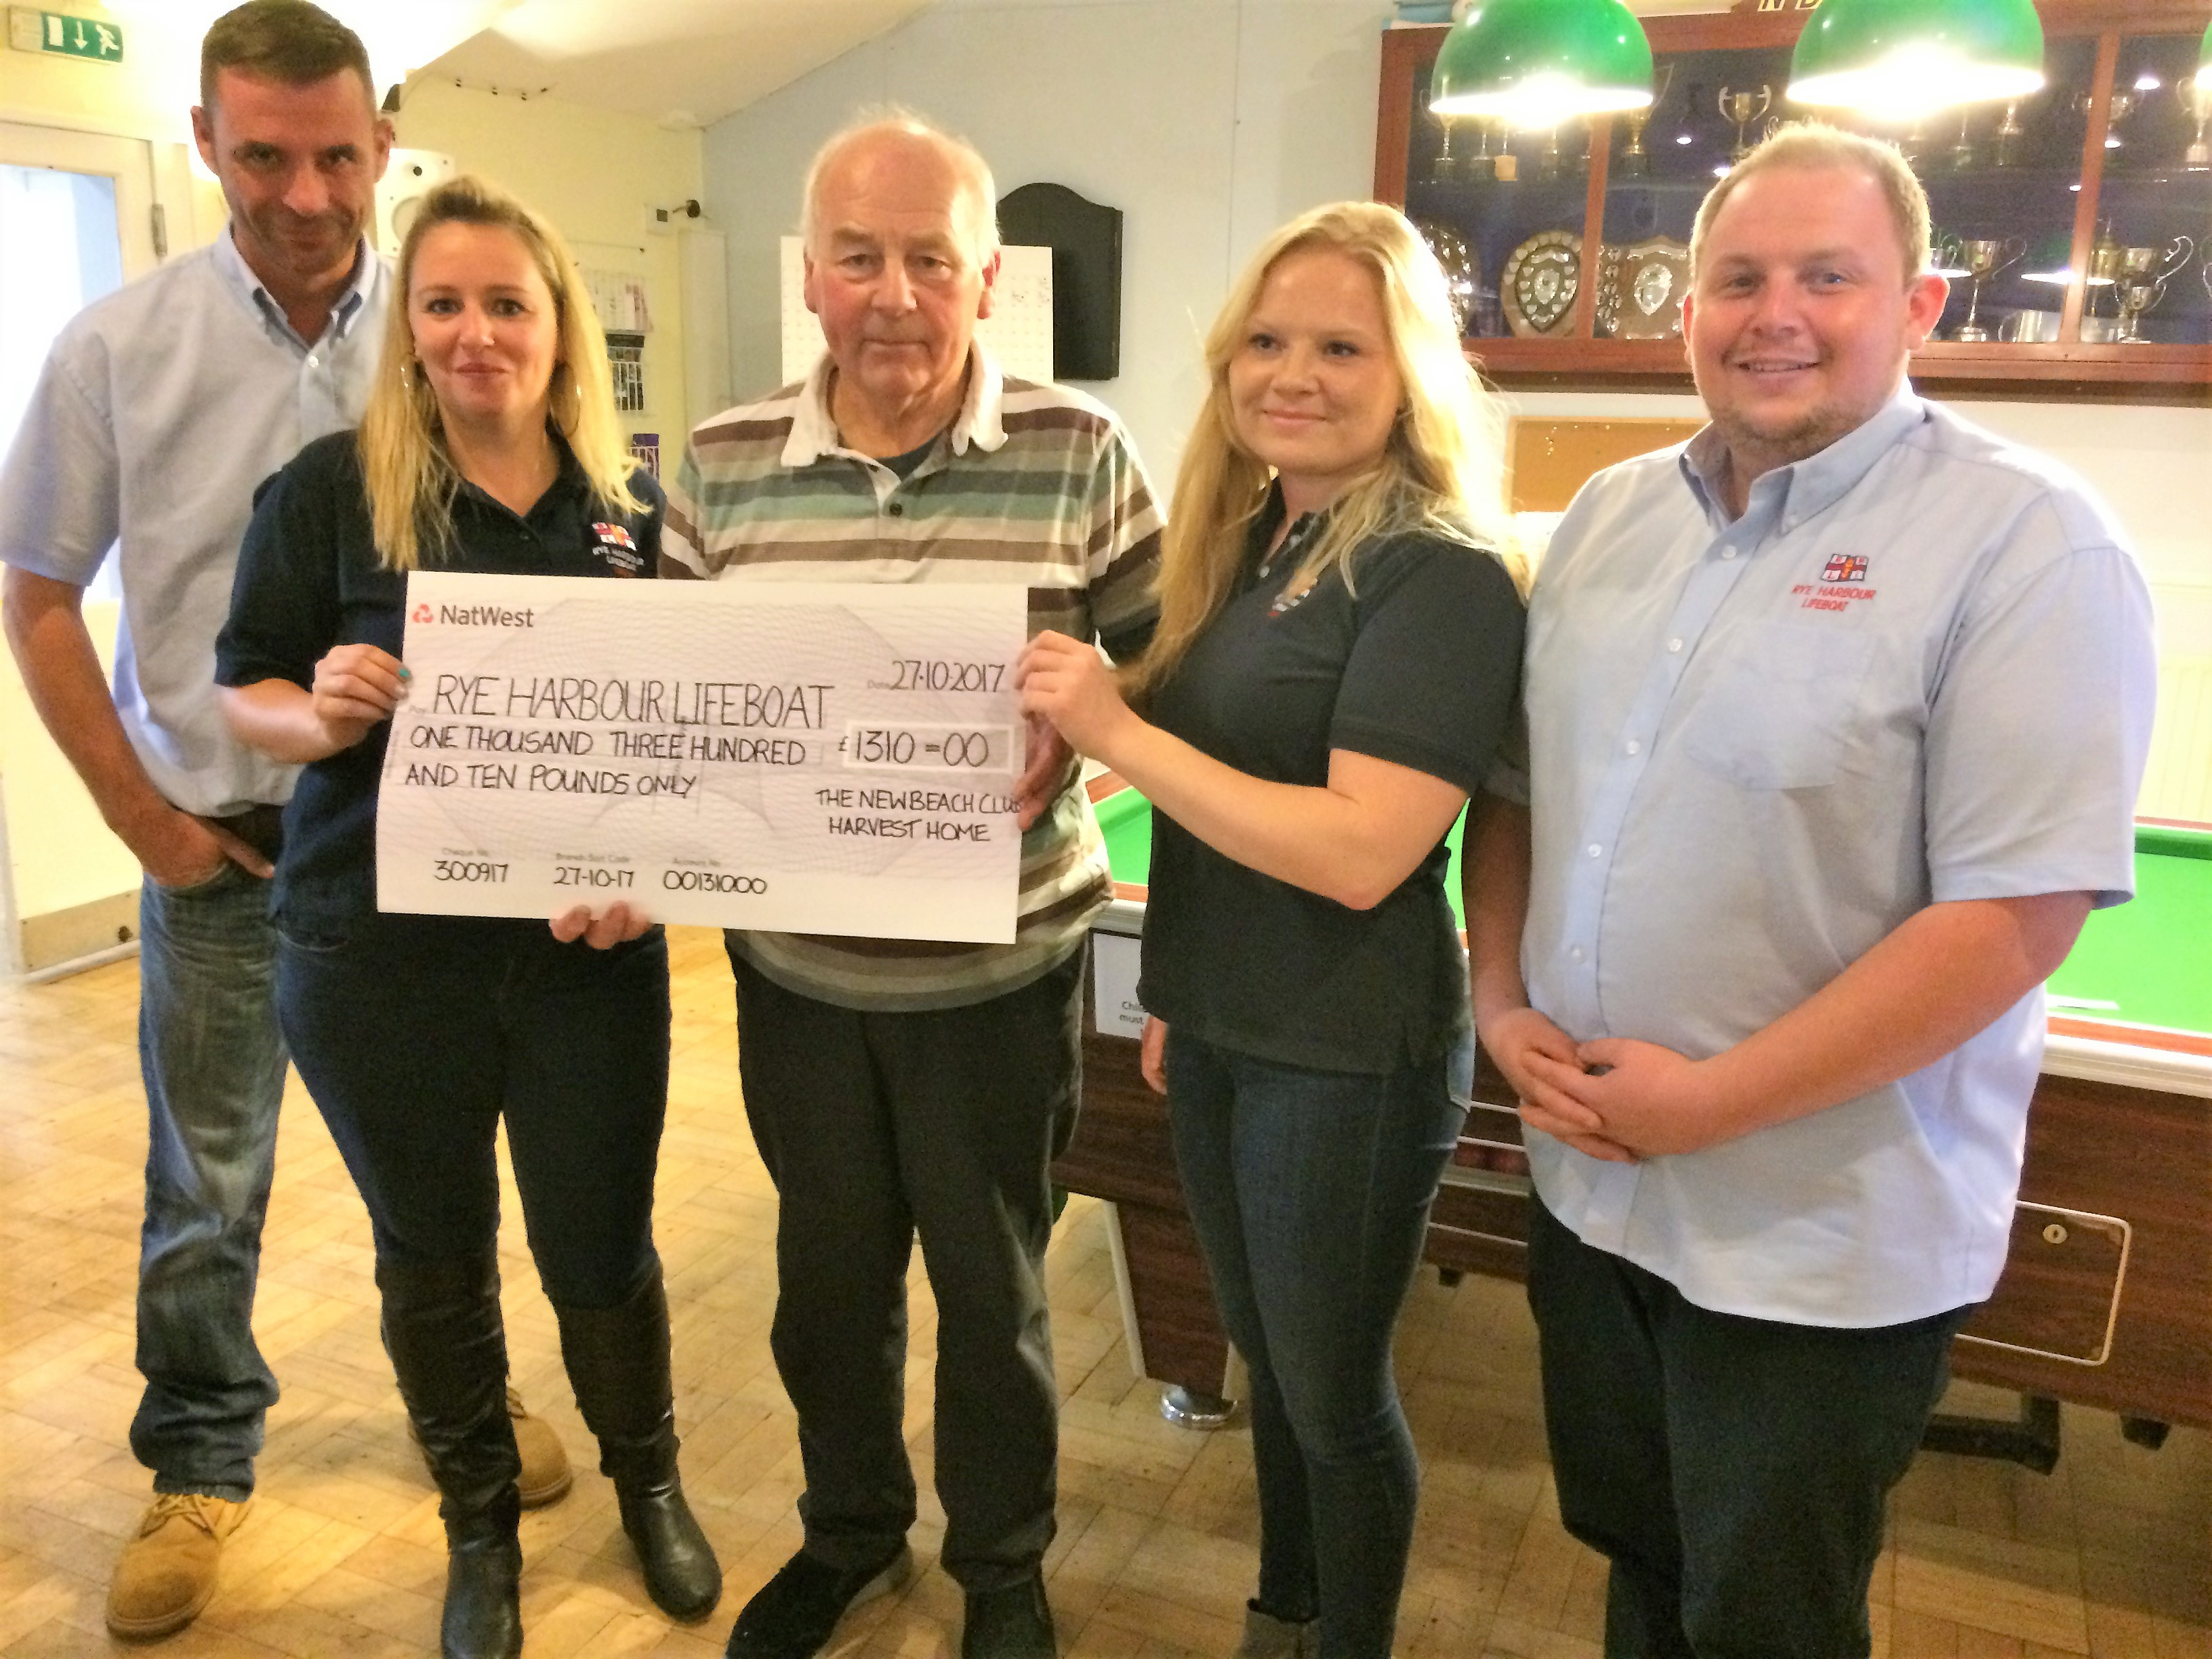 Peter Drew and members of the Rye Harbour crew with their cheque. From left to right Tony Peters, Natalie Arter, Alissia Matthews and Joe Brown